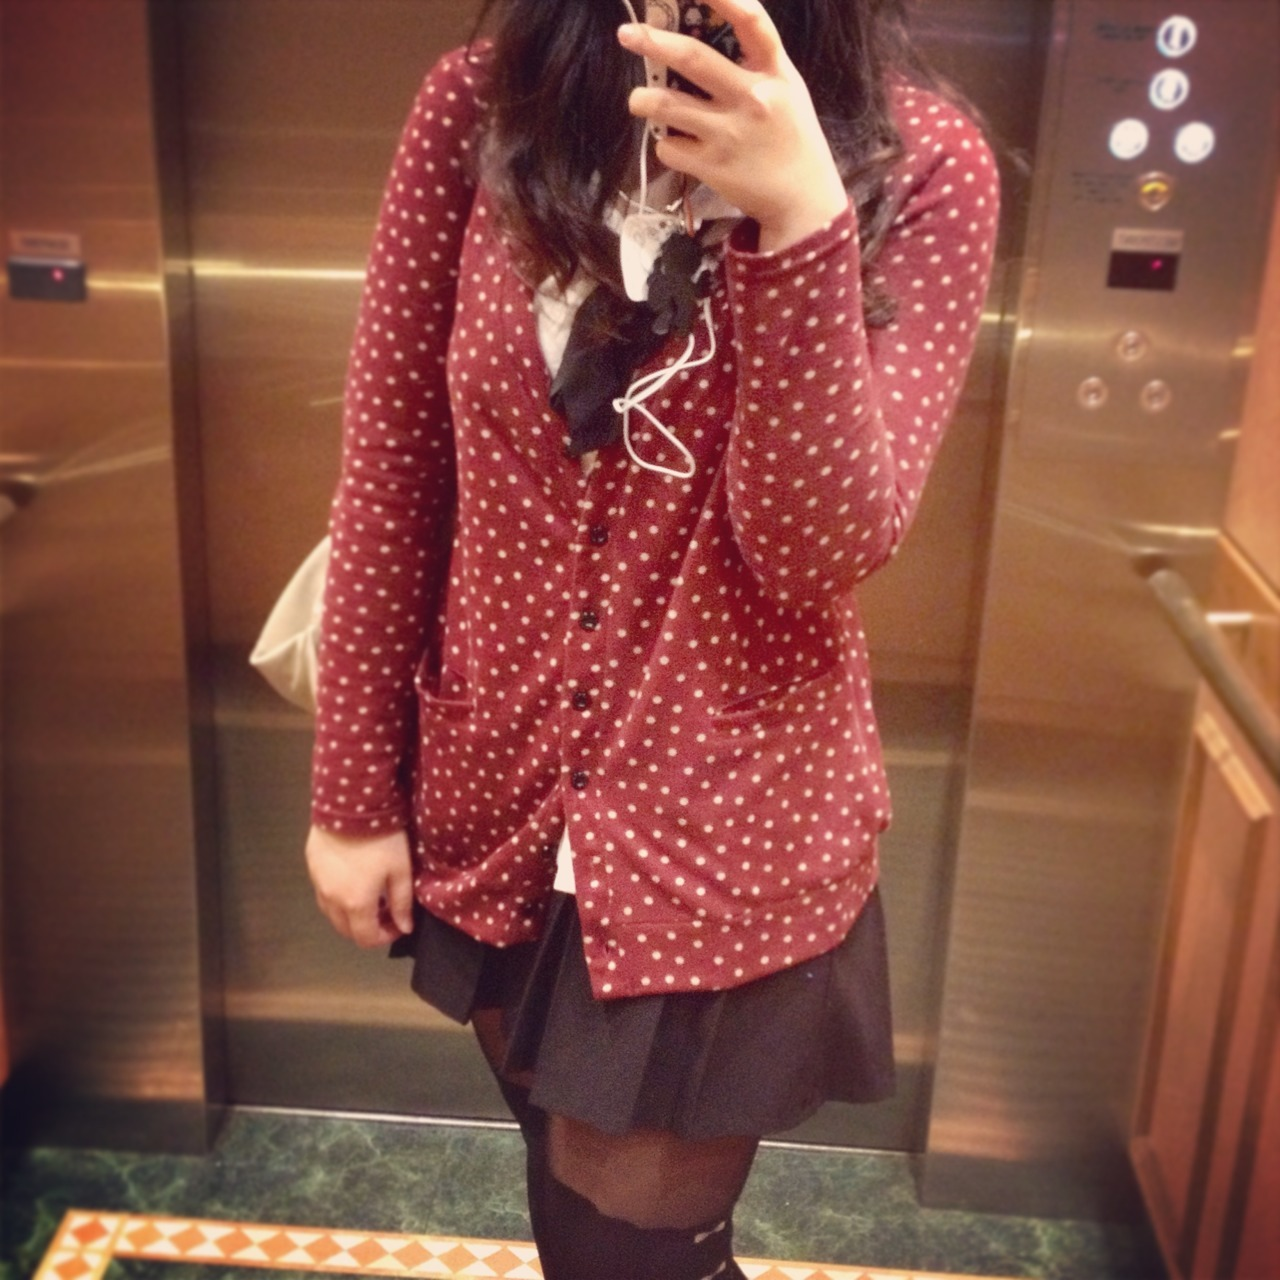 17/05/13 - 家で大きい鏡がないからエレベーターでw  //awkward photo in the lift cos I don't have a big mirror at home (´∀`;)